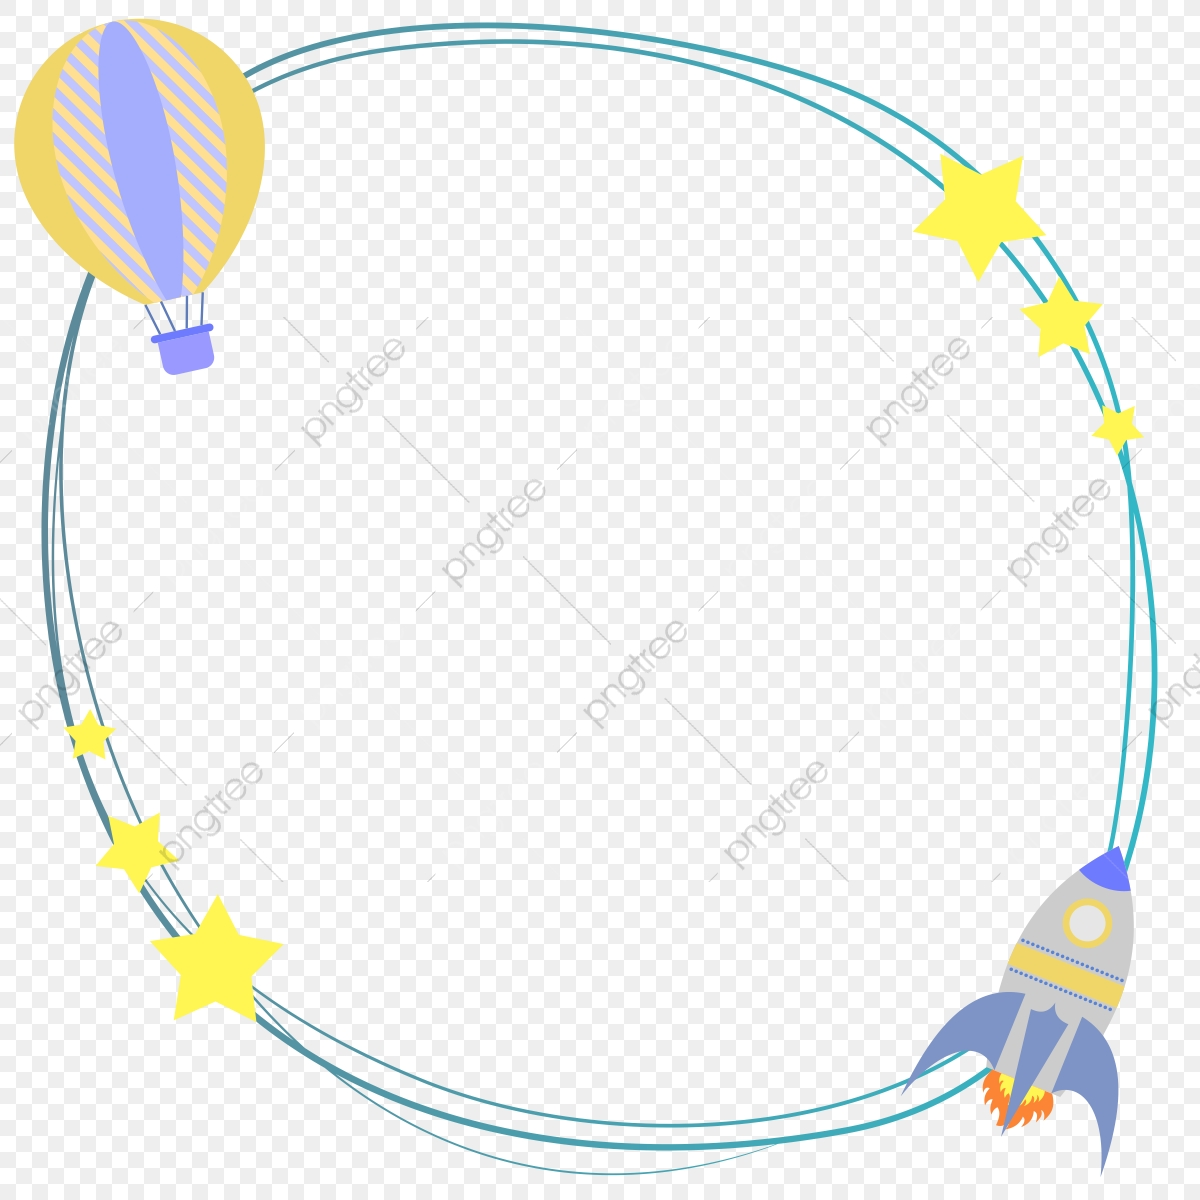 Frame Border Rocket Balloon Stars Baby Shower Invitation Background Png Transparent Image And Clipart For Free Download